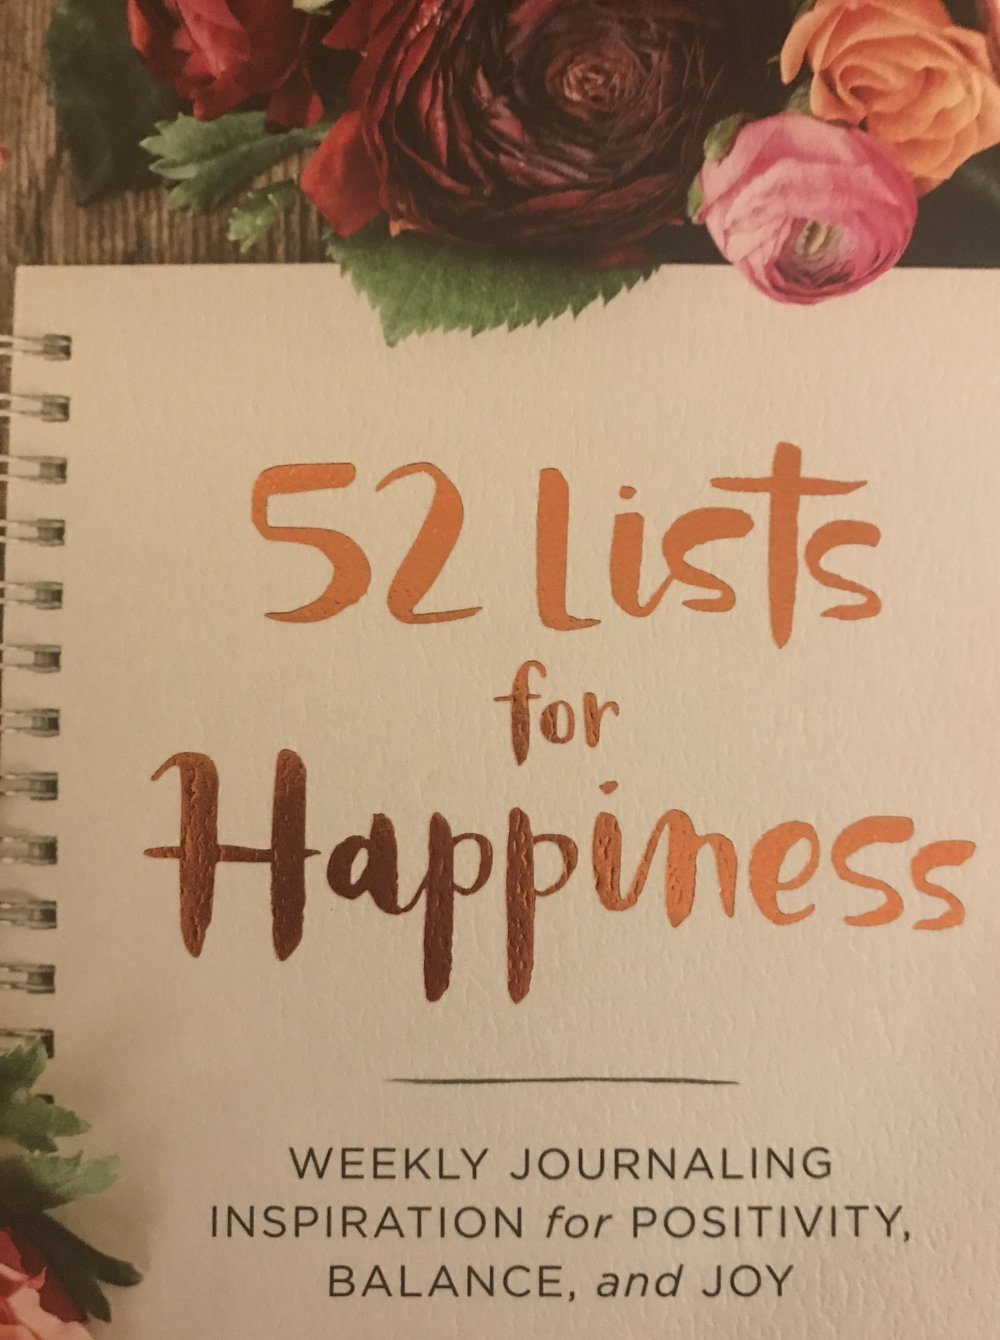 52-lists-for-happiness.JPG